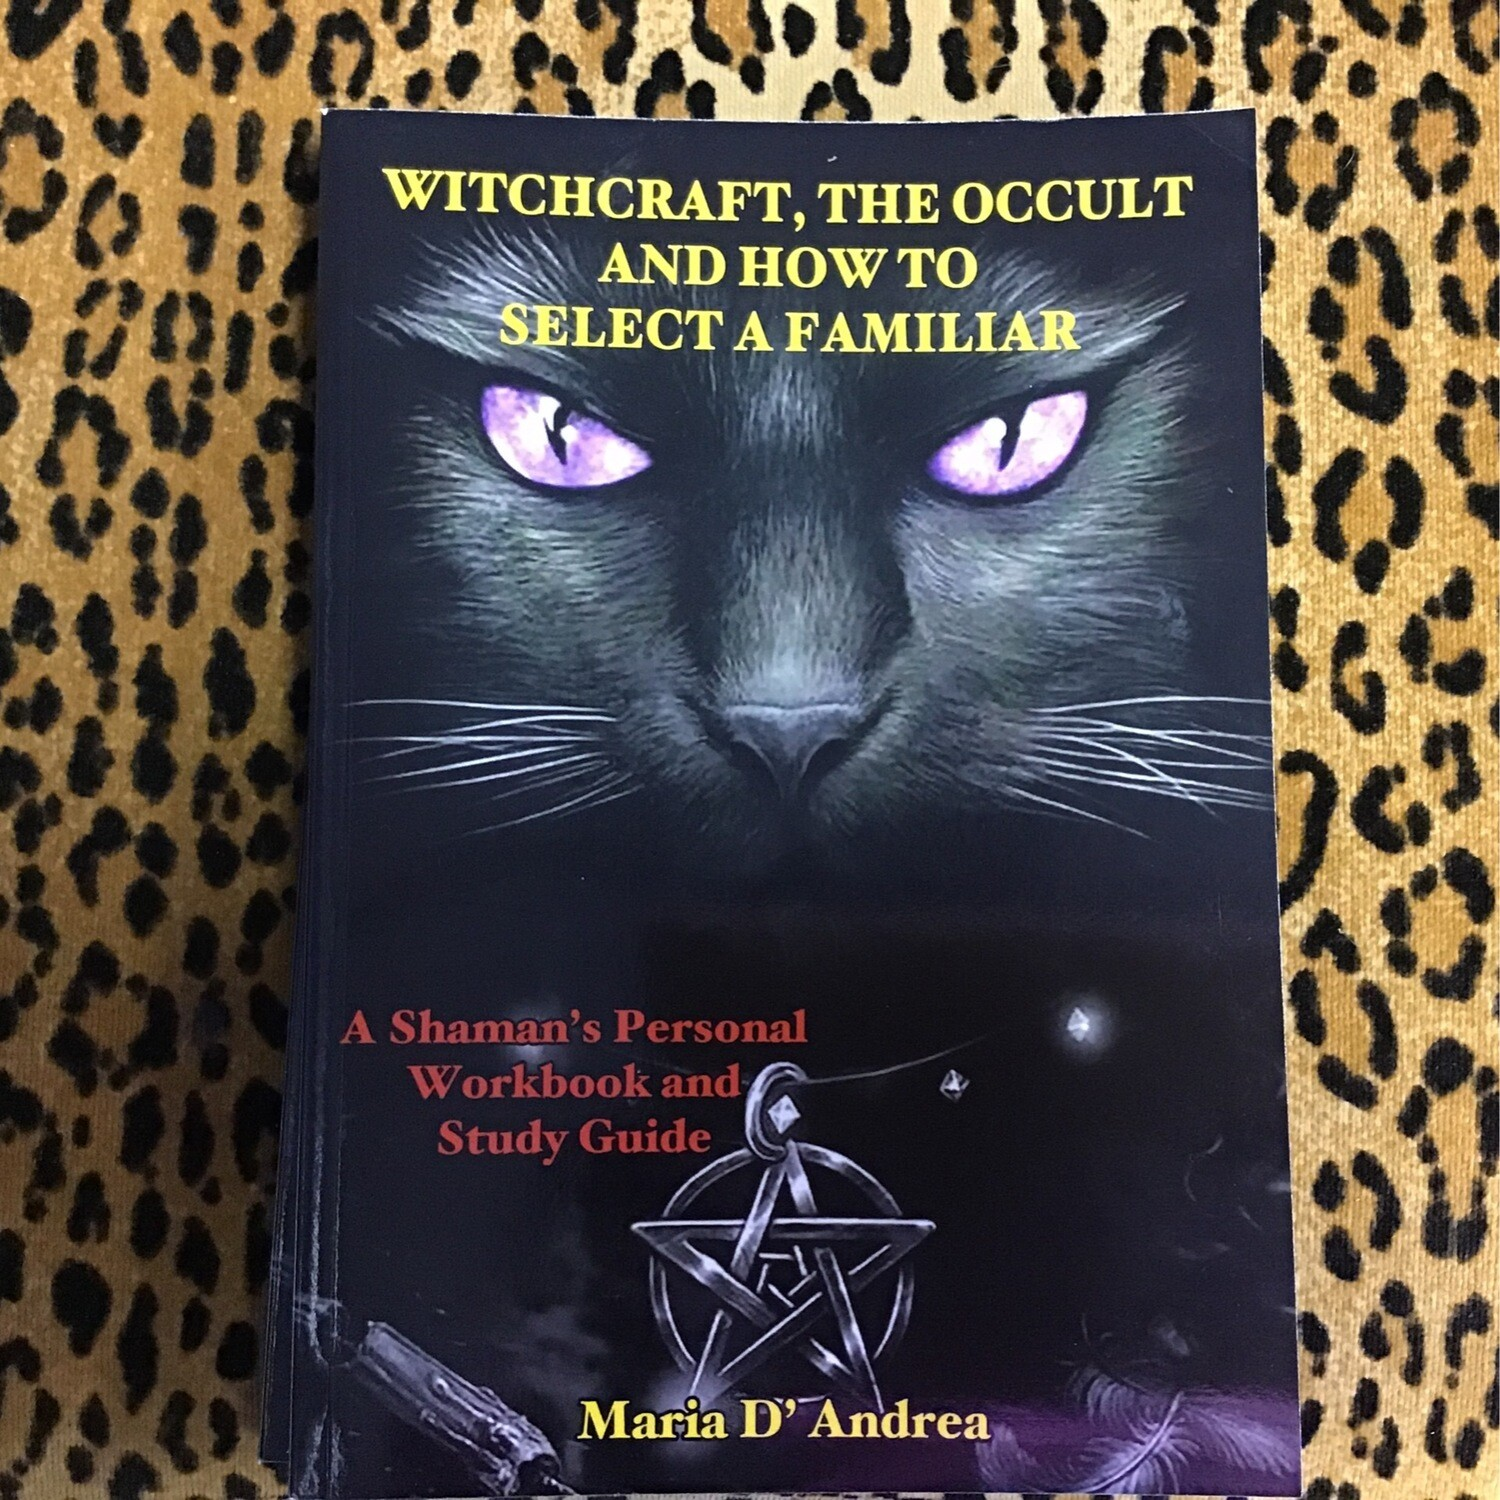 Witchcraft, The Occult and How to Select a Familiar by Maria D'Andrea